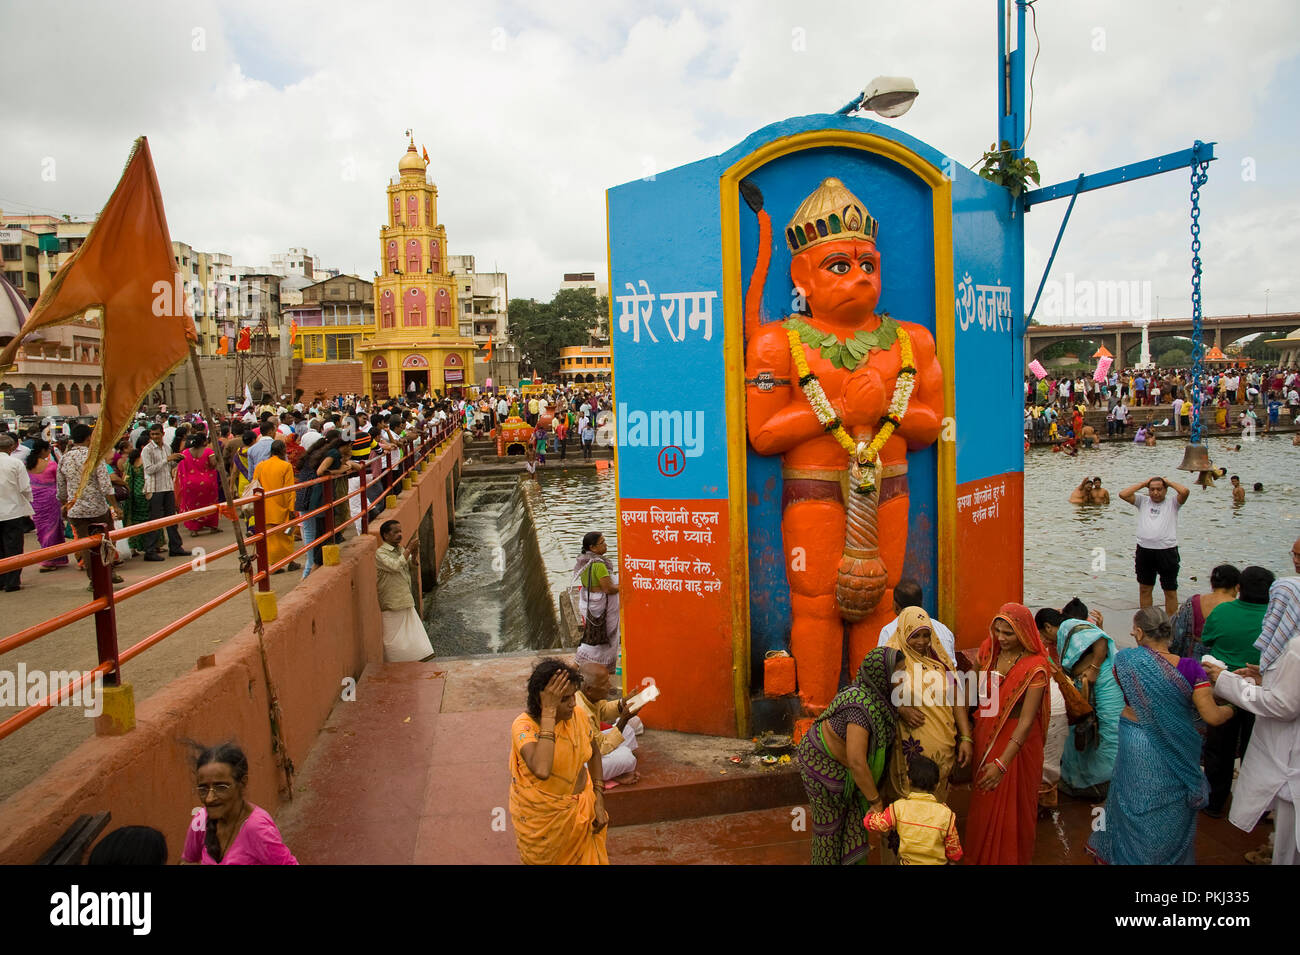 Devotees worship Lord Hanuman statue on the occasion of